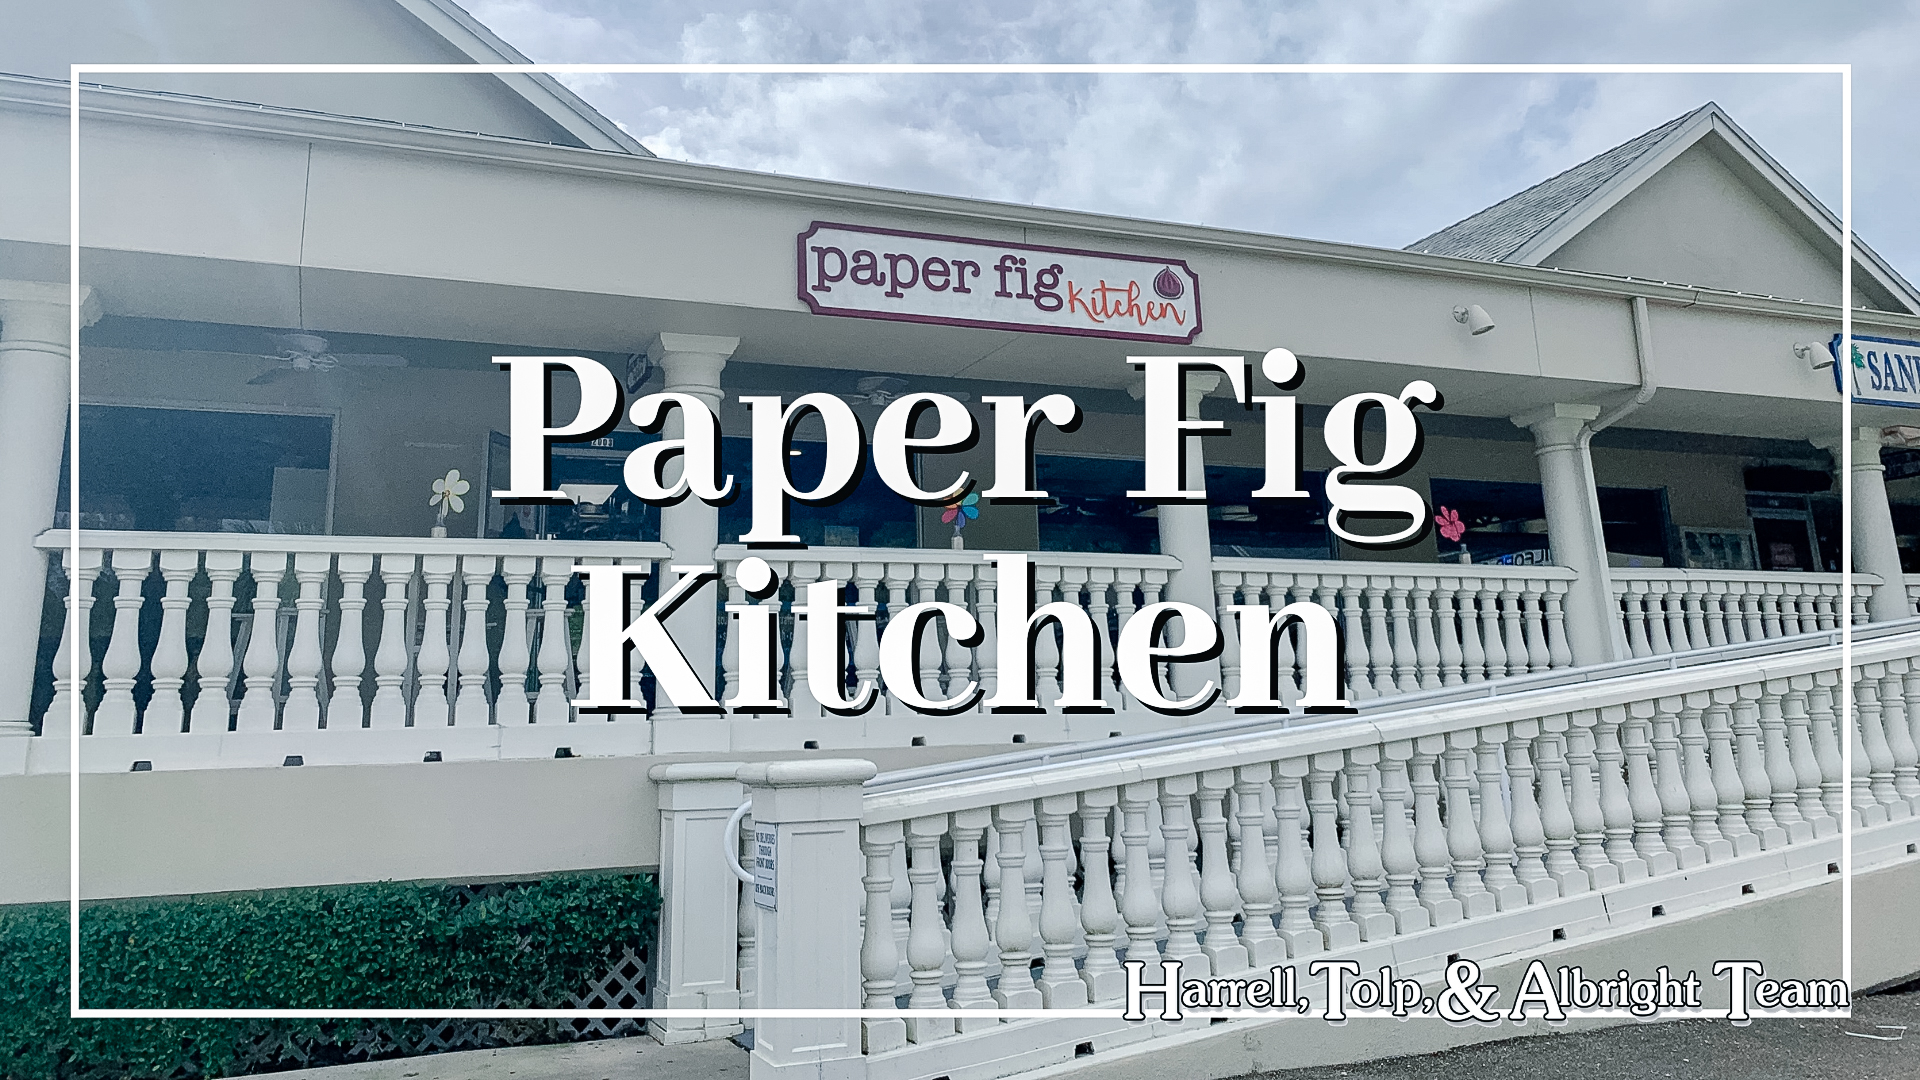 Paper Fig Kitchen